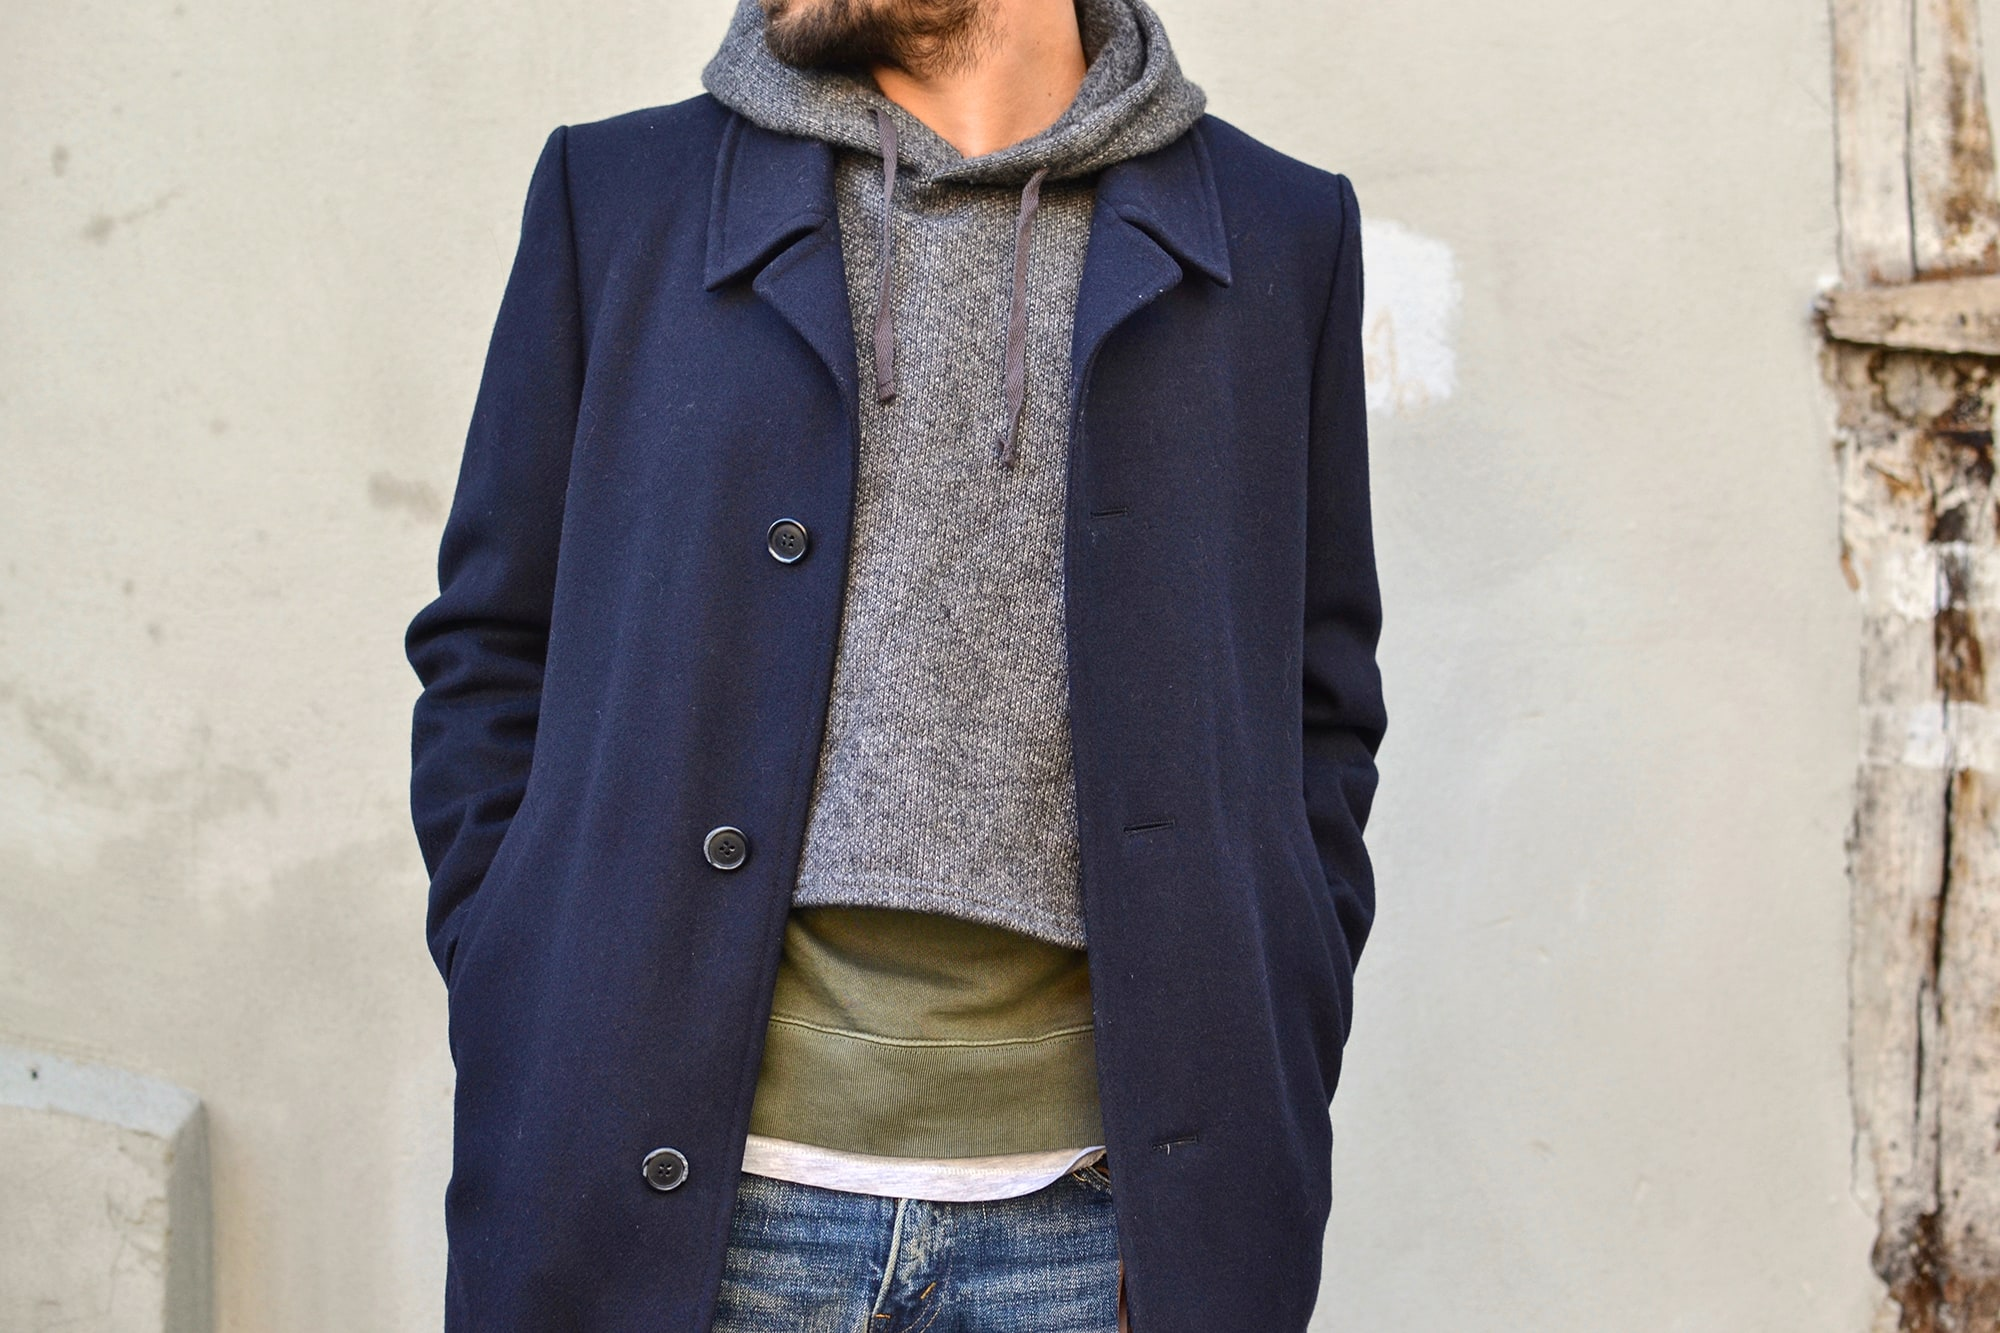 comment porter un manteau long avec du leayering et un interliner Engineered Garments